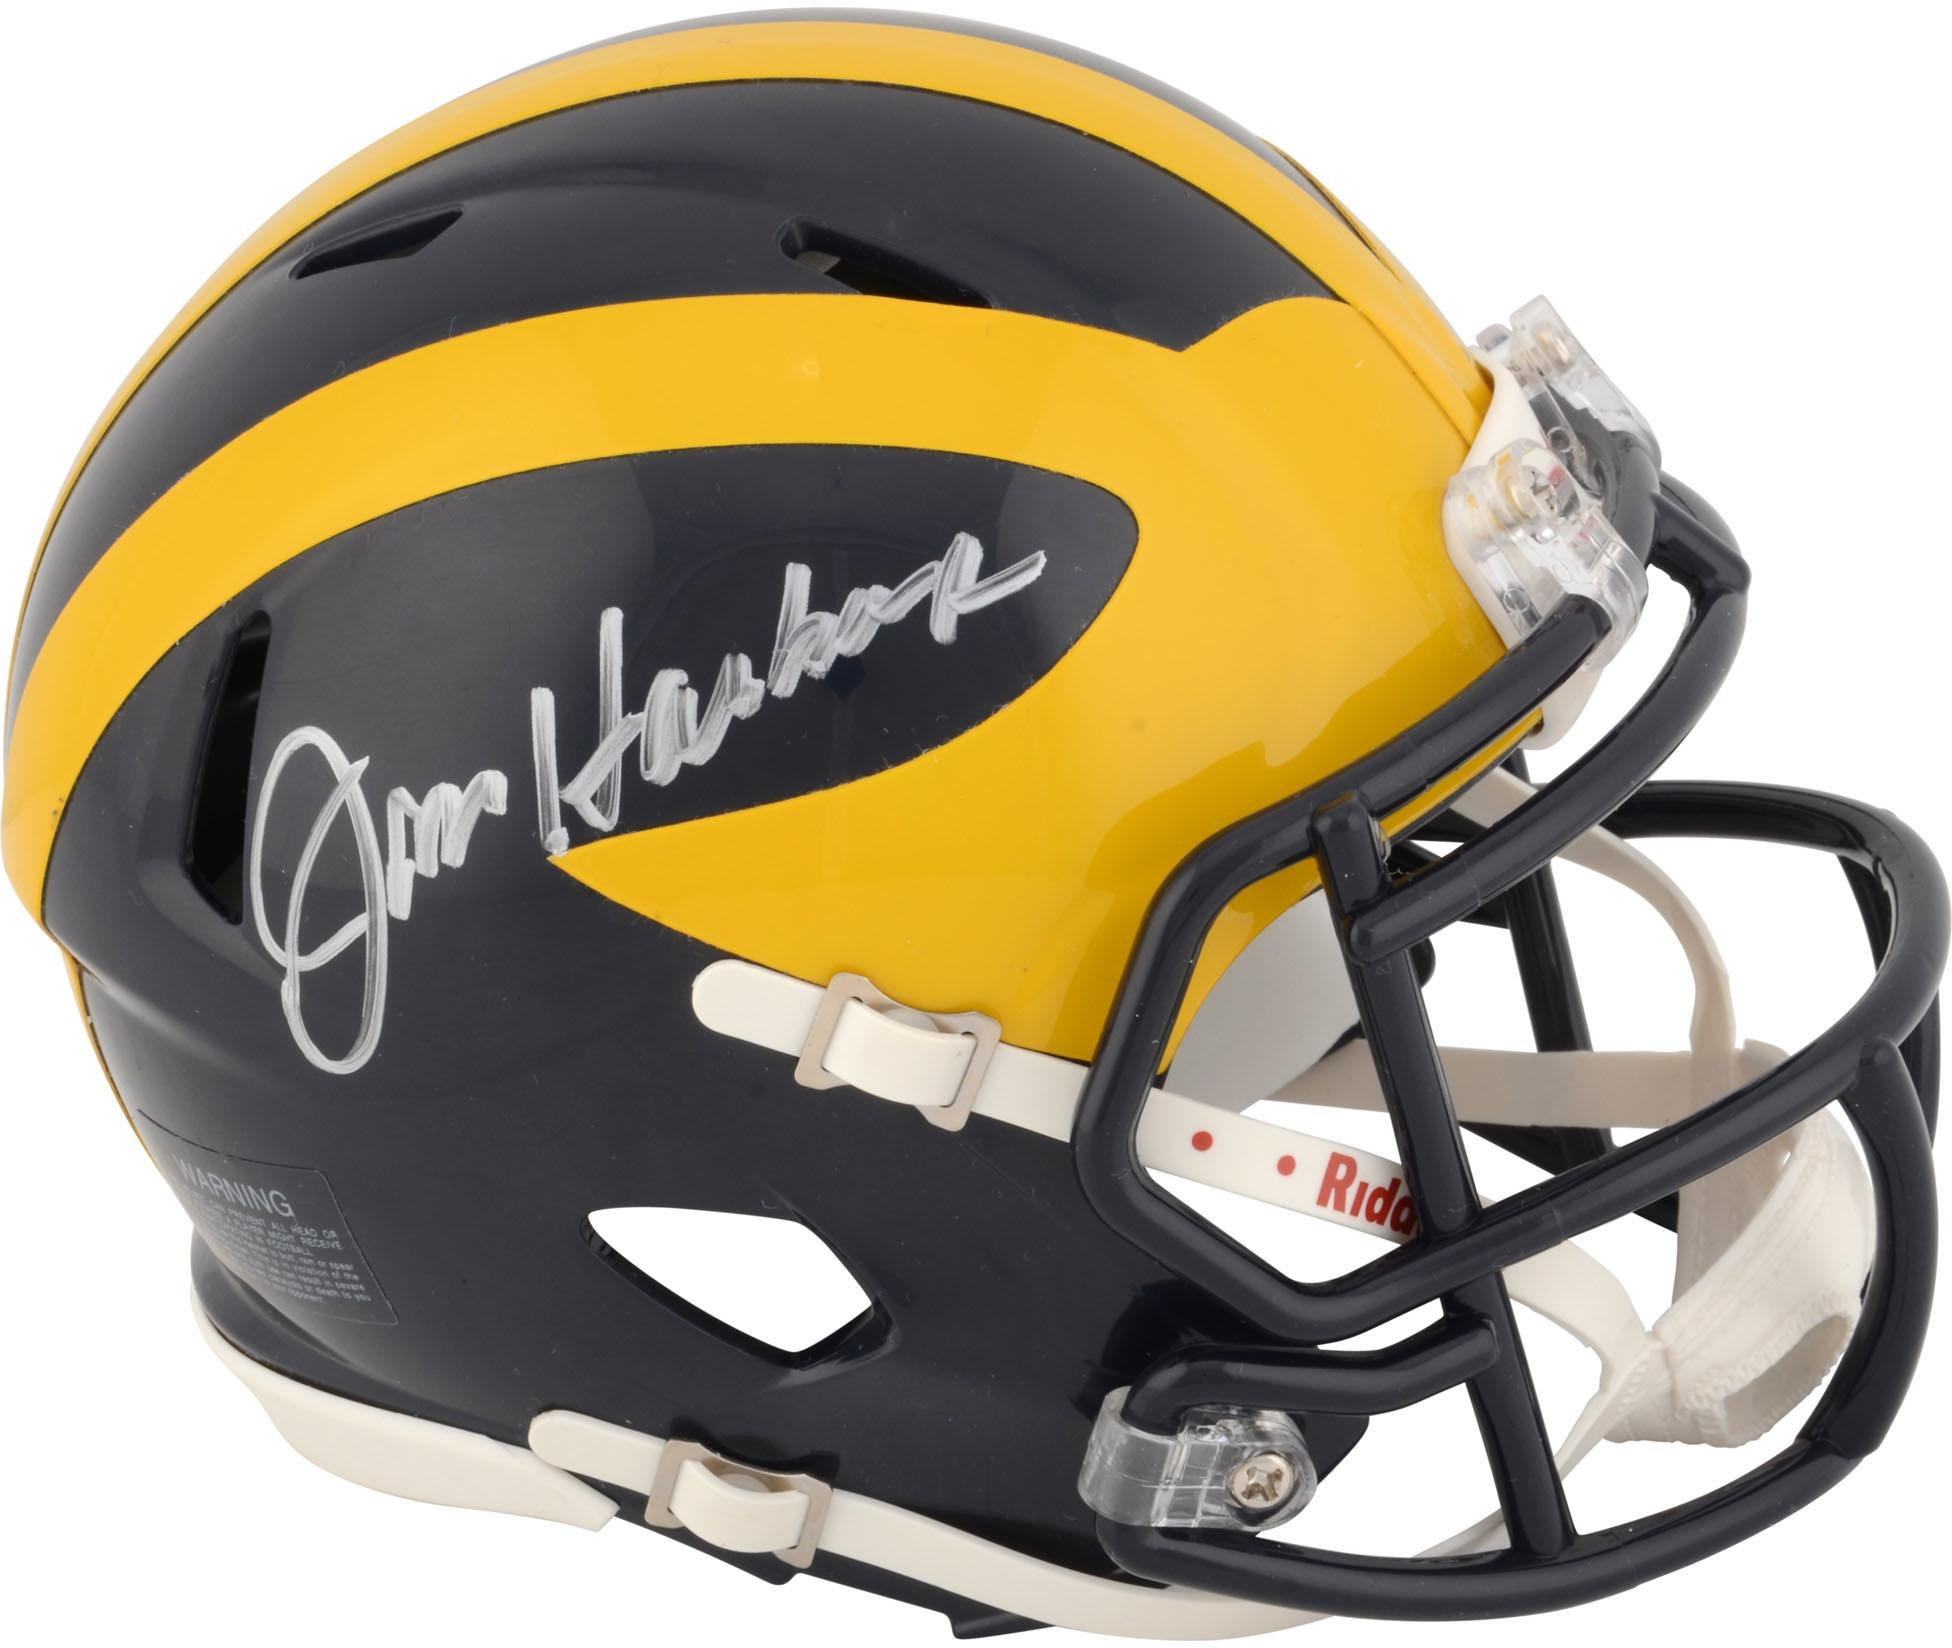 Jim Harbaugh Michigan Wolverines Autographed Riddell Mini Helmet Fanatics Authentic Certified Autographed College Mini Helmets